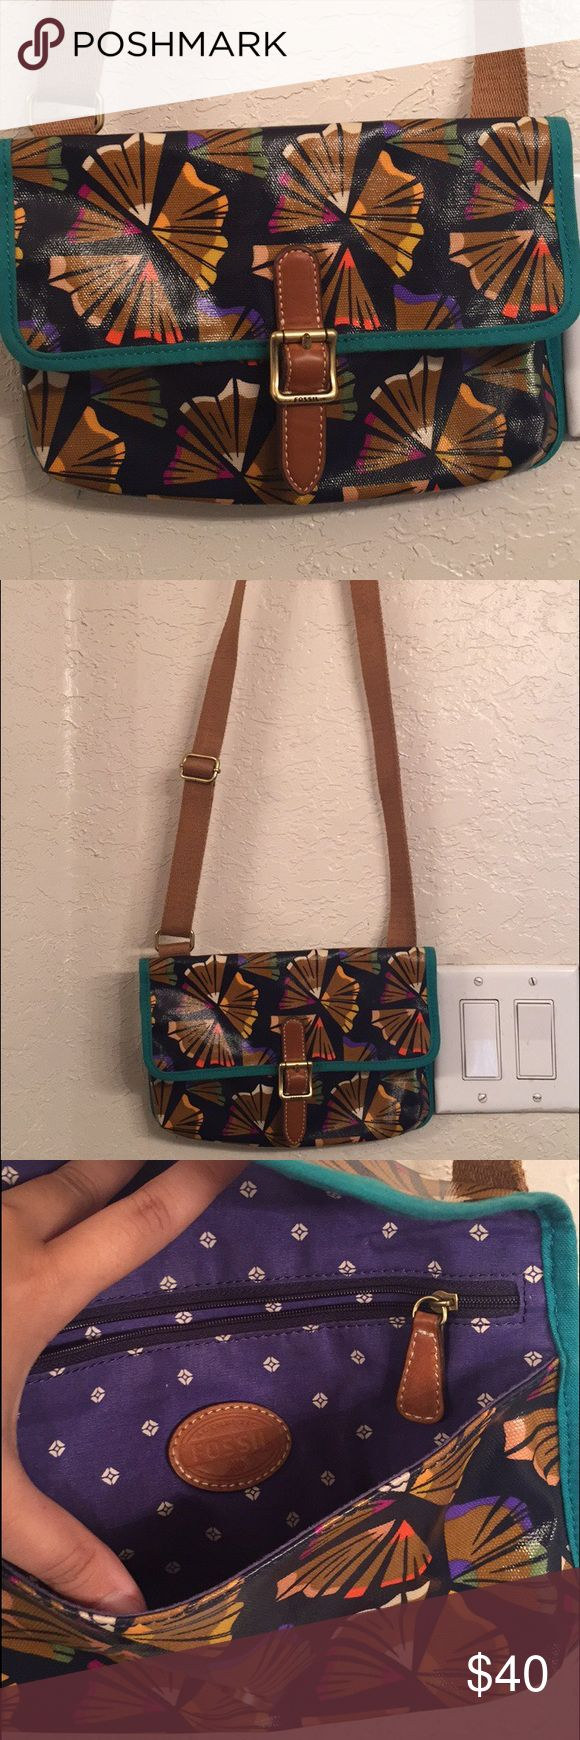 🎄XMAS GIFT 🎁Fossil purse Fossil purse. Perfect condition Fossil Bags Crossbody Bags